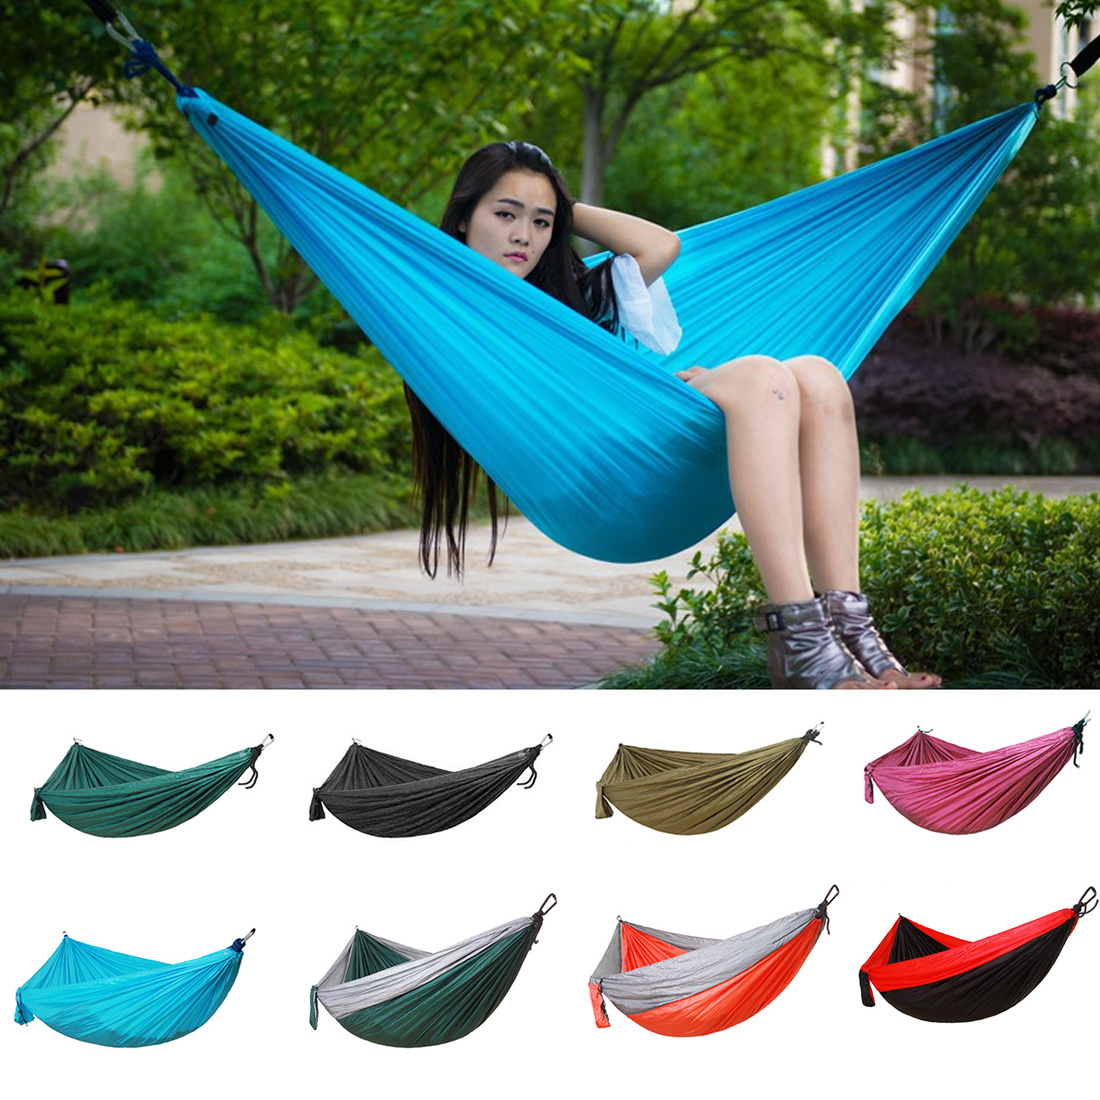 Double Hammock 210T Nylon Hanging Bed Durable Ultra-light Sleeping Bed Swing Outdoor Camping Travel 2 Persons With Carry Bag